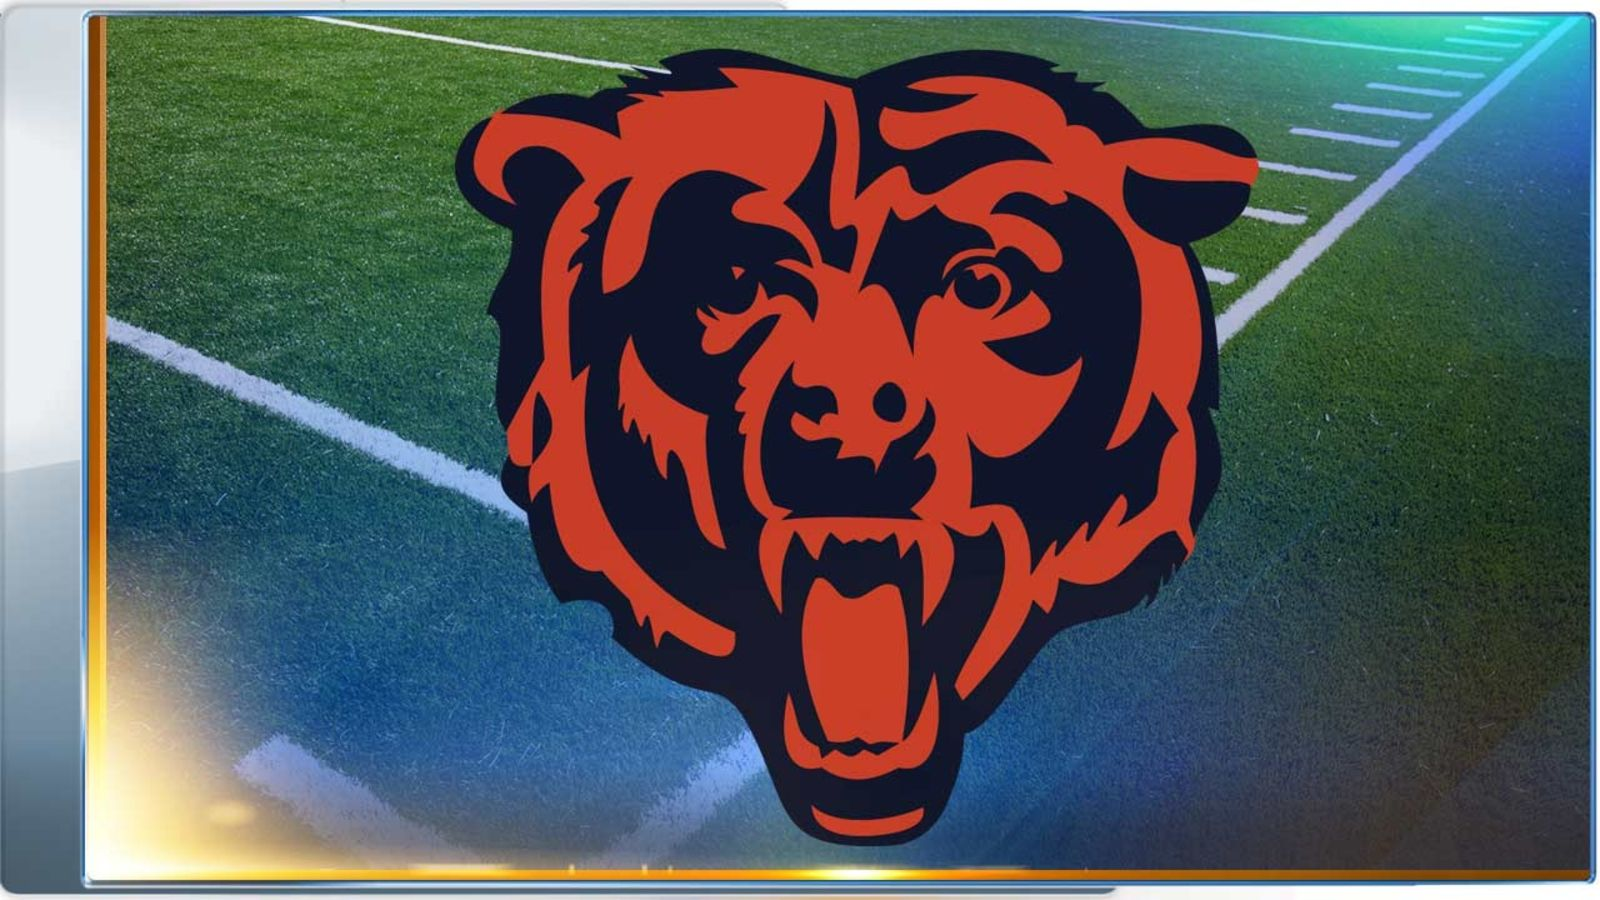 2021 Chicago Bears schedule to be released by NFL Wednesday